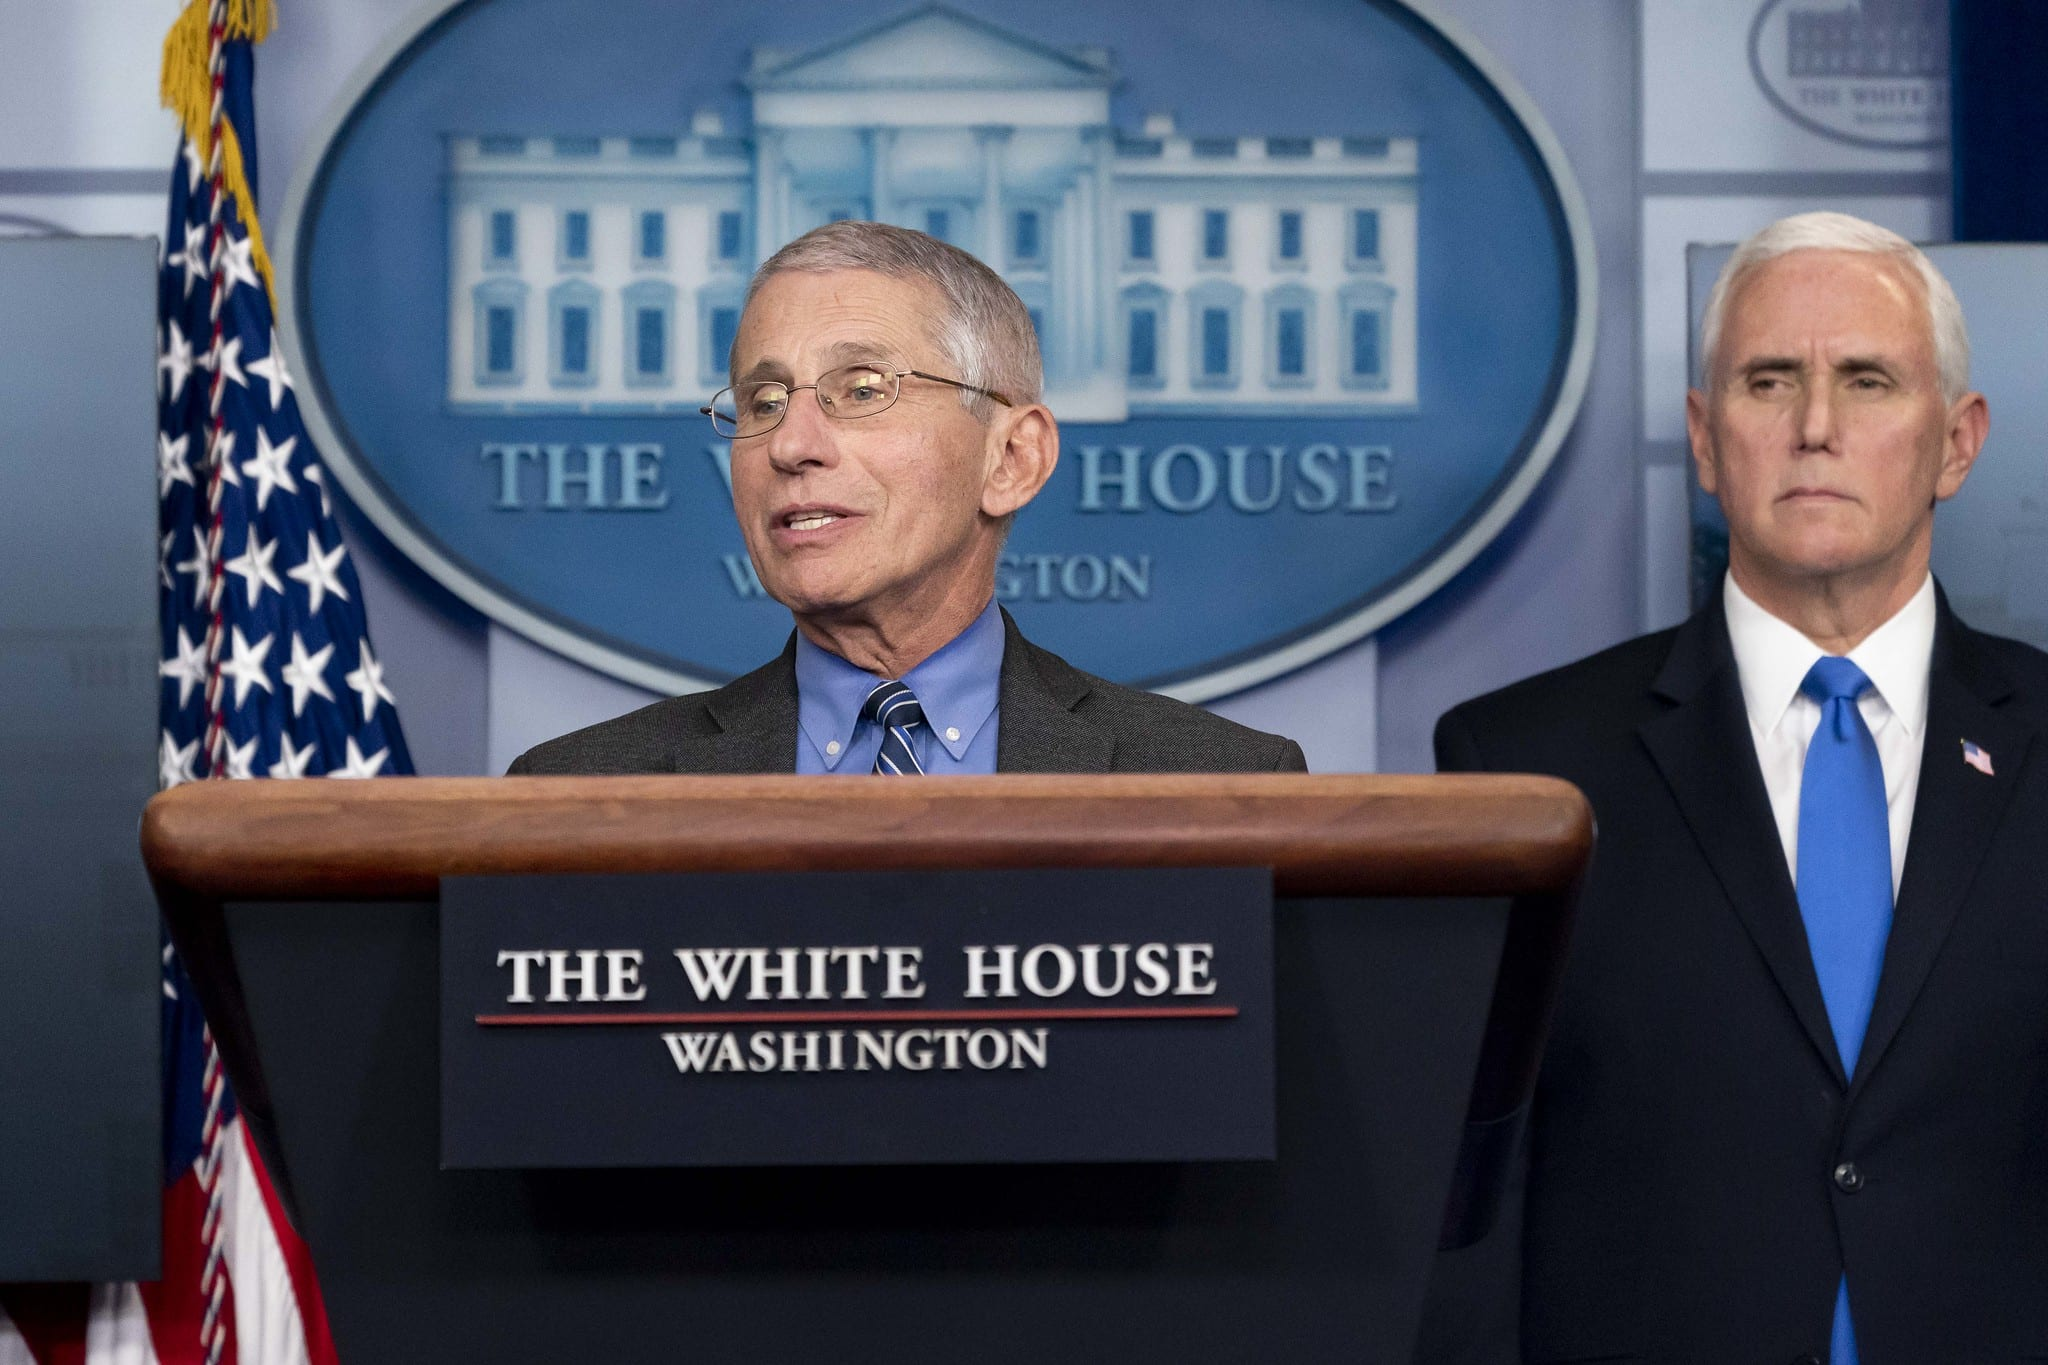 Dr. Anthony Fauci at a coronavirus briefing, April 6, 2020 (D. Myles Cullen/Official White House Photo)